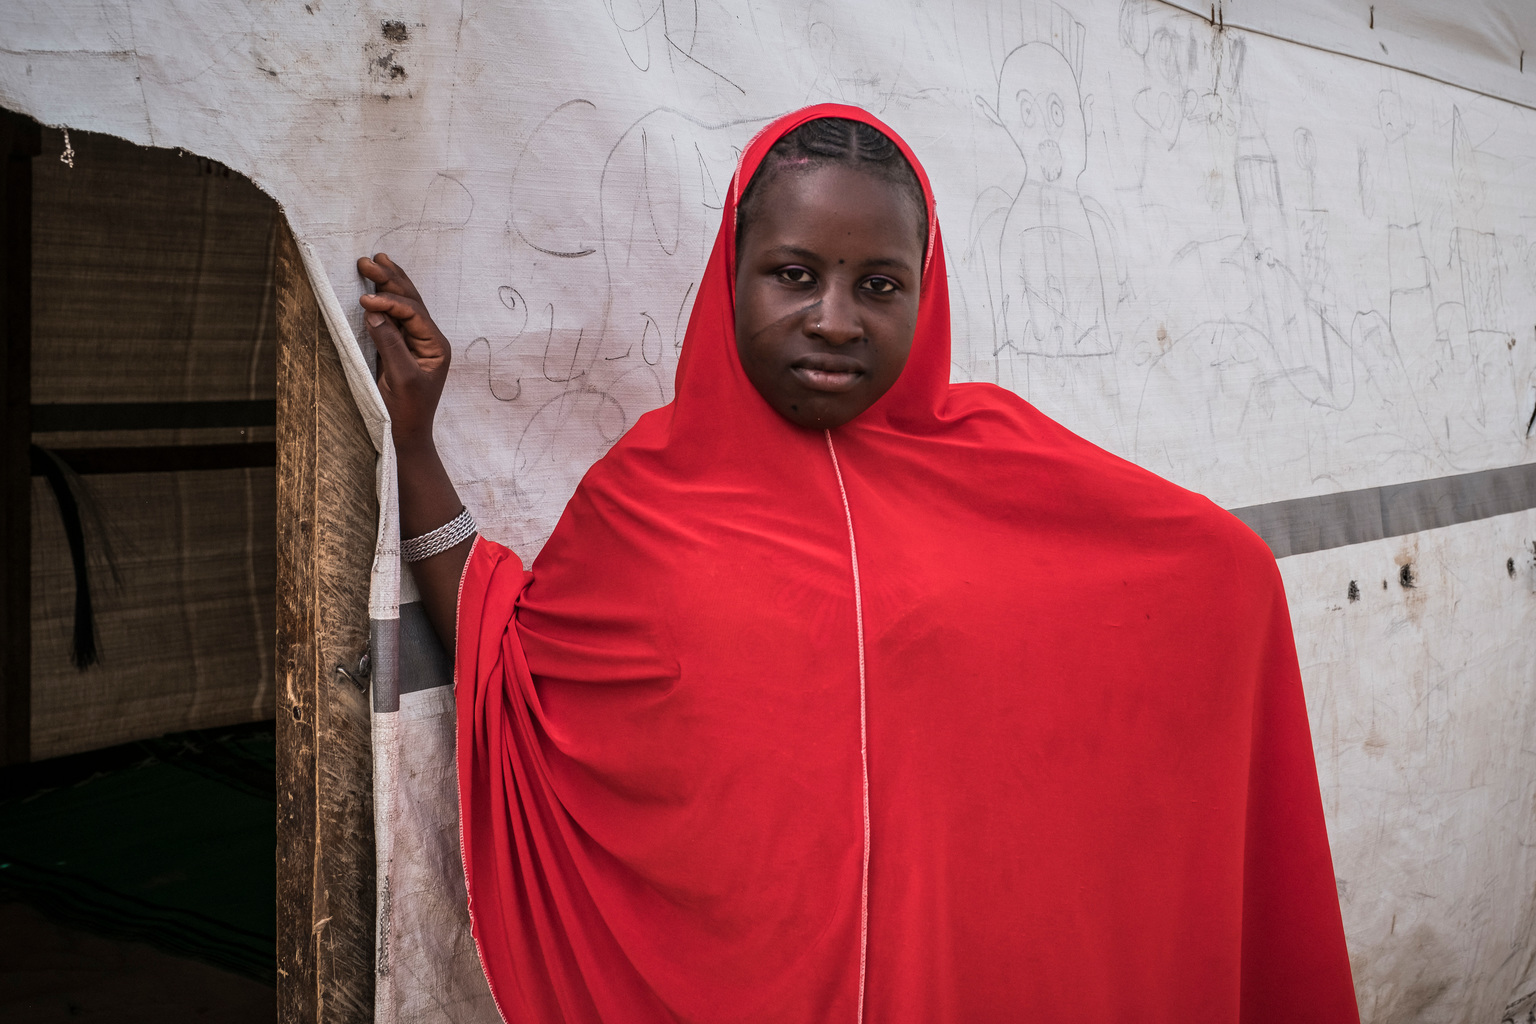 Nigerian refugee Hafsa Oumar, 16, stands outside a classroom at the Dar Naim school, in Daresalam refugee camp, Lake Region, Chad, Thursday 20 April 2017. Before coming to Chad, Hafsa never had a chance to attend school. Hafsa enrolled in school for the first time when she arrived in Chad in 2015. However, she stopped attending school following her marriage in February 2017. More than 25 million children between 6 and 15 years old, or 22 per cent of children in that age group, are missing out on school in conflict zones across 22 countries. In response to the education crisis in Chad, UNICEF has since the start of 2017 provided school supplies to more than 58,000 students, distributed teaching materials to more than 760 teachers, and built 151 classrooms, 101 temporary learning spaces, 52 latrines and 7 sports fields. UNICEF Chad also supported the salaries of 327 teachers for the 2016-2017 school year. To help drive an increased understanding of the challenges children affected and uprooted by conflict face in accessing school, UNICEF advocate Muzoon Almellehan, a 19-year-old Syrian refugee and education activist, travelled to Chad, a country where nearly three times as many girls as boys of primary-age in conflict areas are missing out on education.